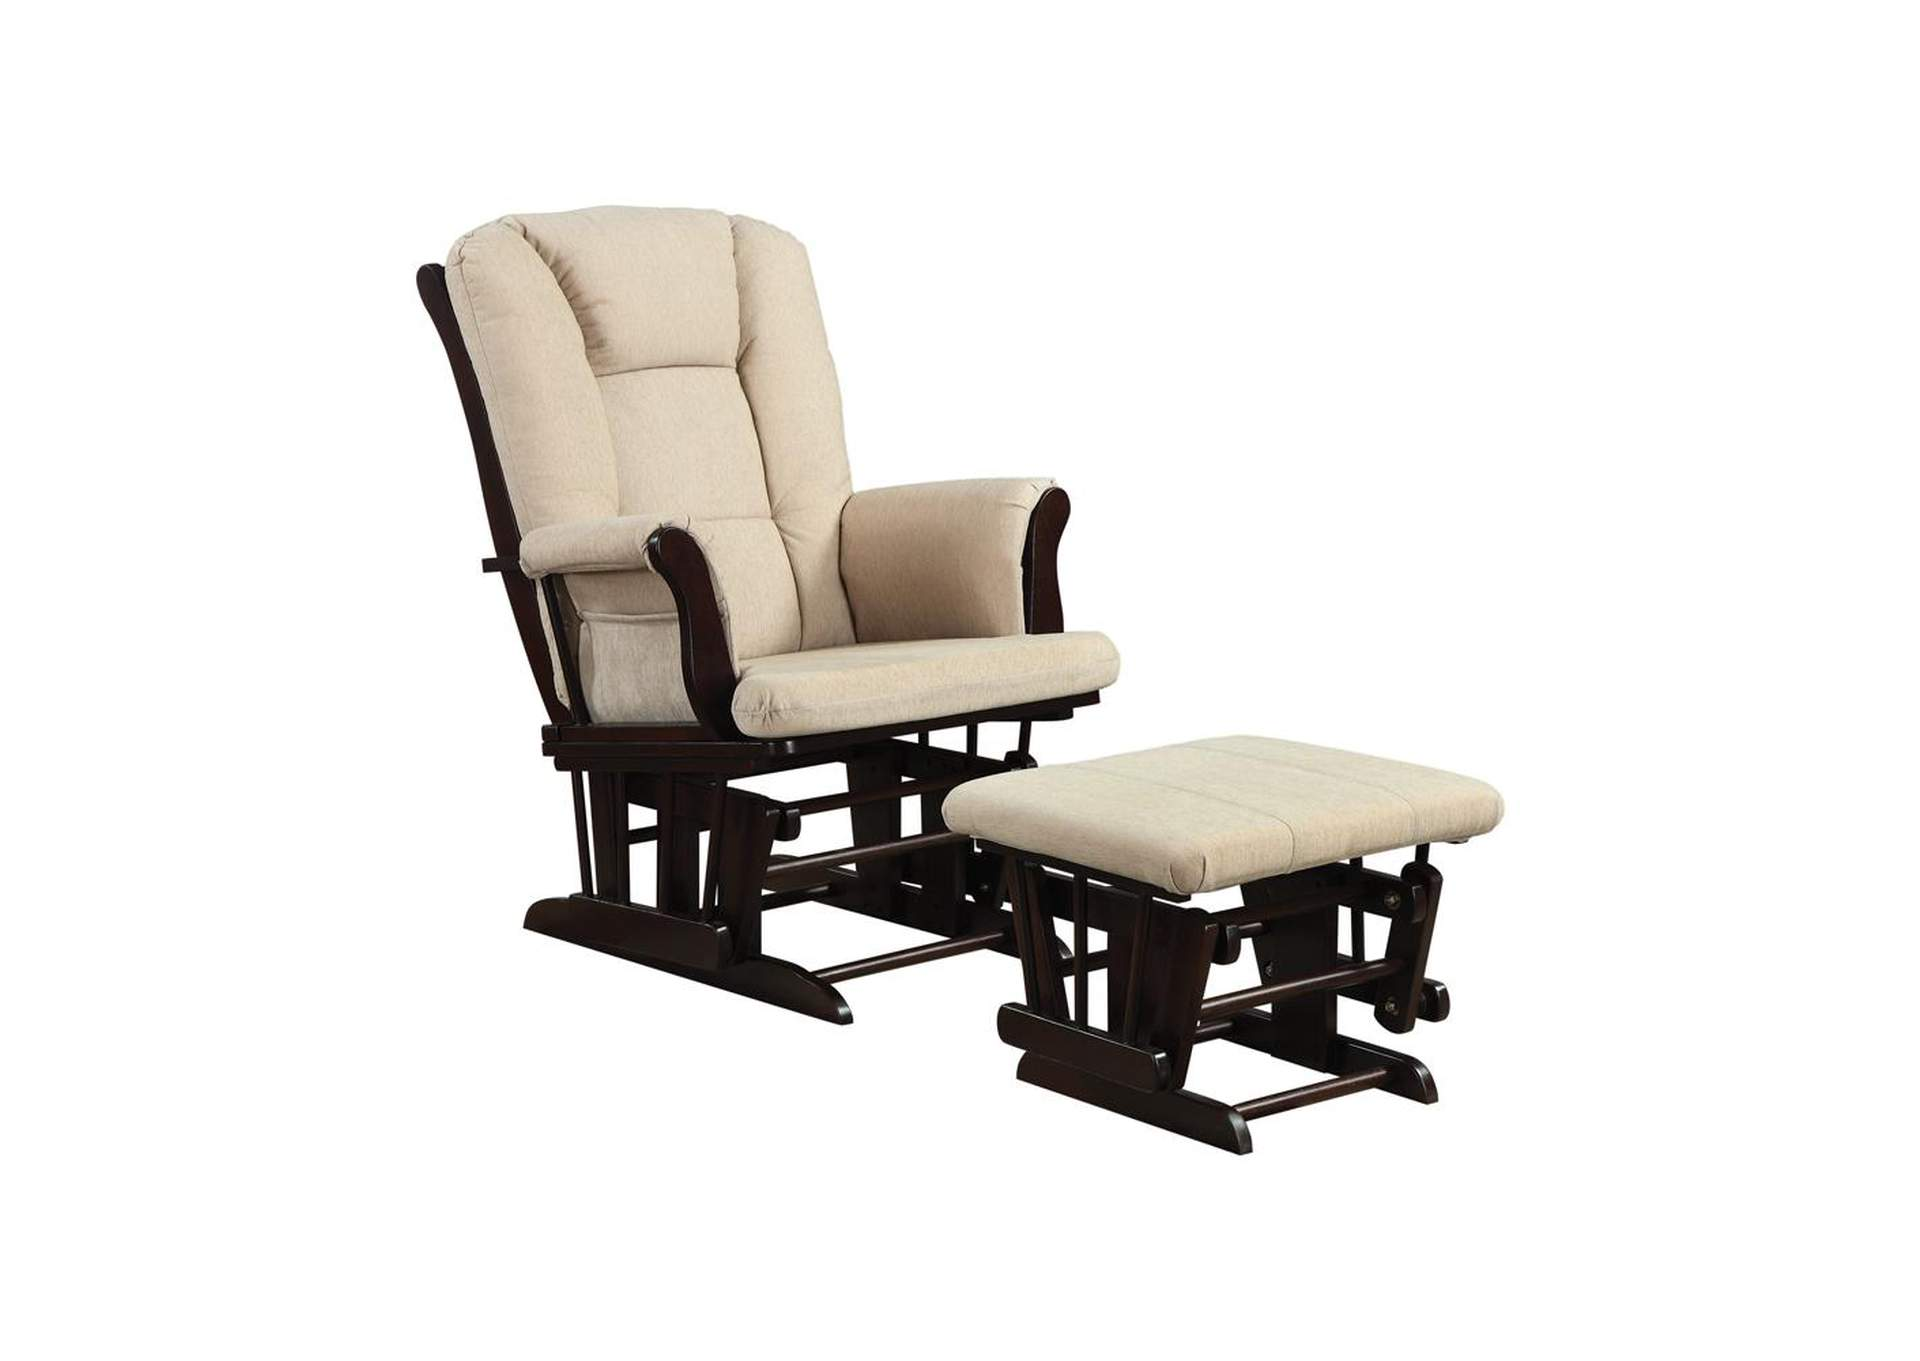 Bone Traditional Beige Rocking Glider W/ Matching Ottoman,Coaster Furniture